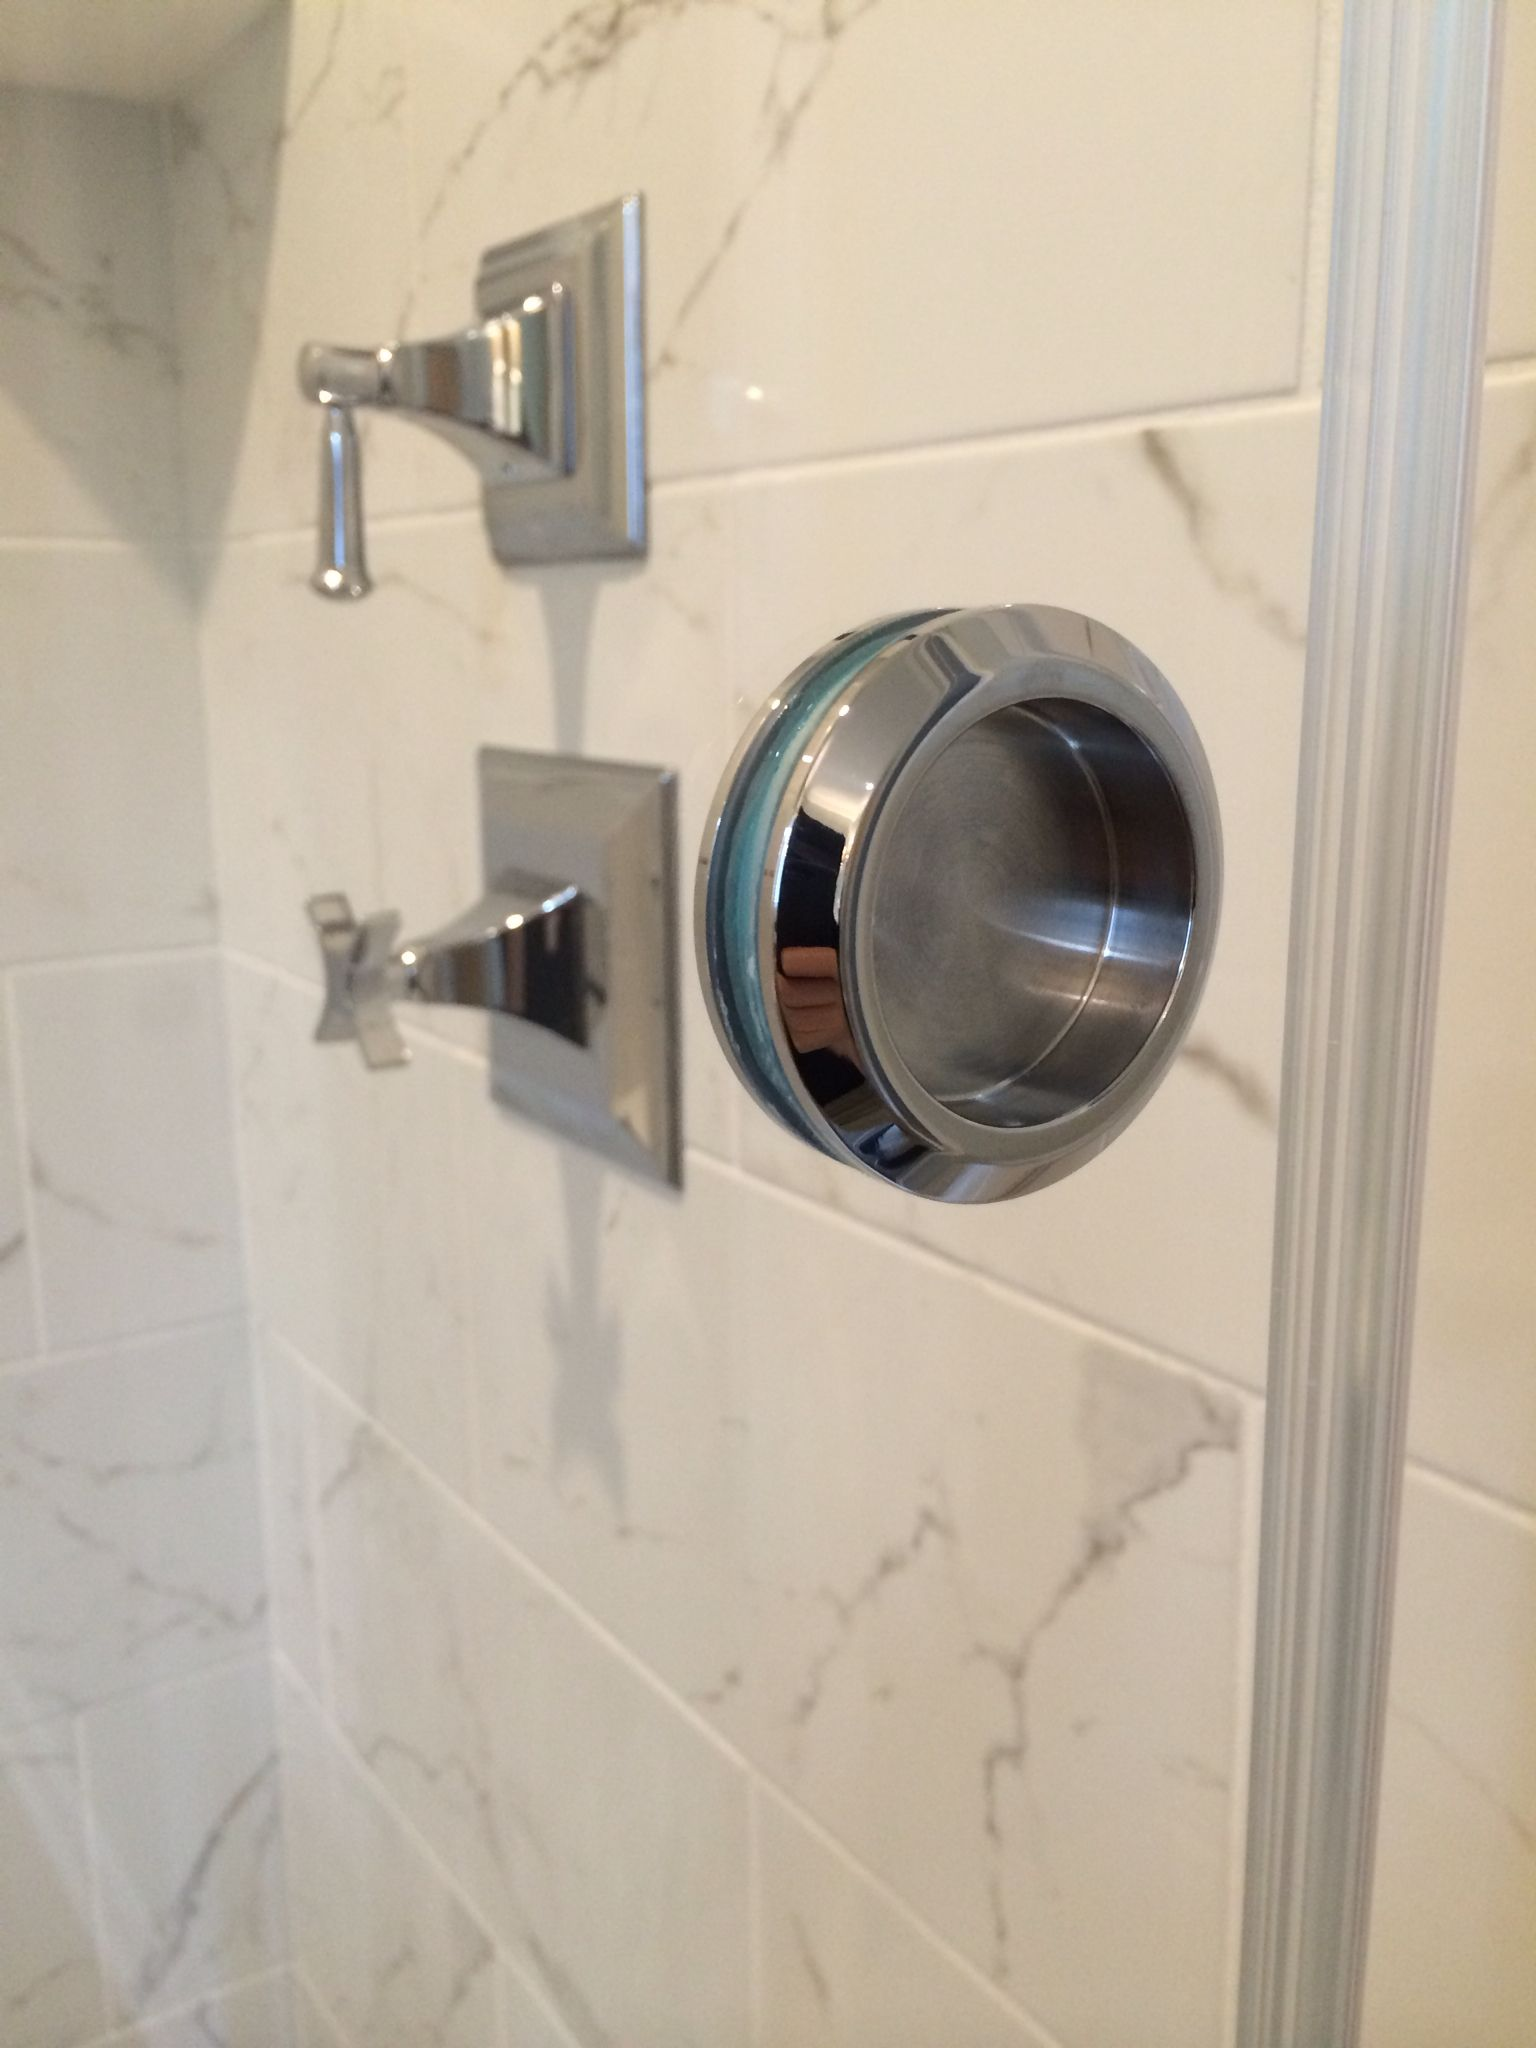 2 Closed Circle Pull Typically Used With Sliding Shower Doors But Can Be Used With A Swing Door Too M Door Handles Shower Door Handles Shower Door Hardware